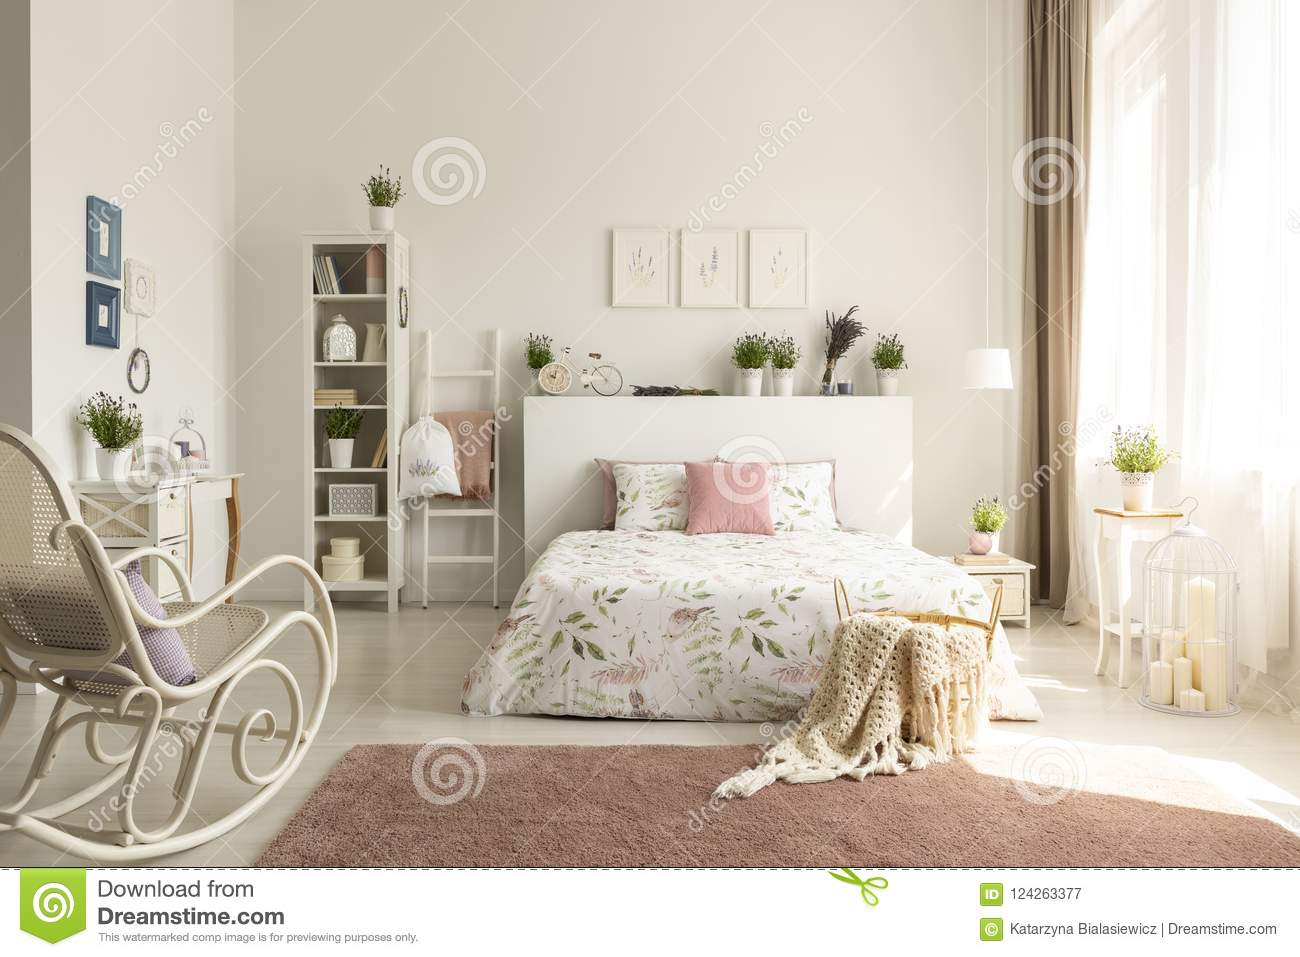 White Bedroom Interior With Dirty Pink Carpet, Rocking Chair, Wi ...